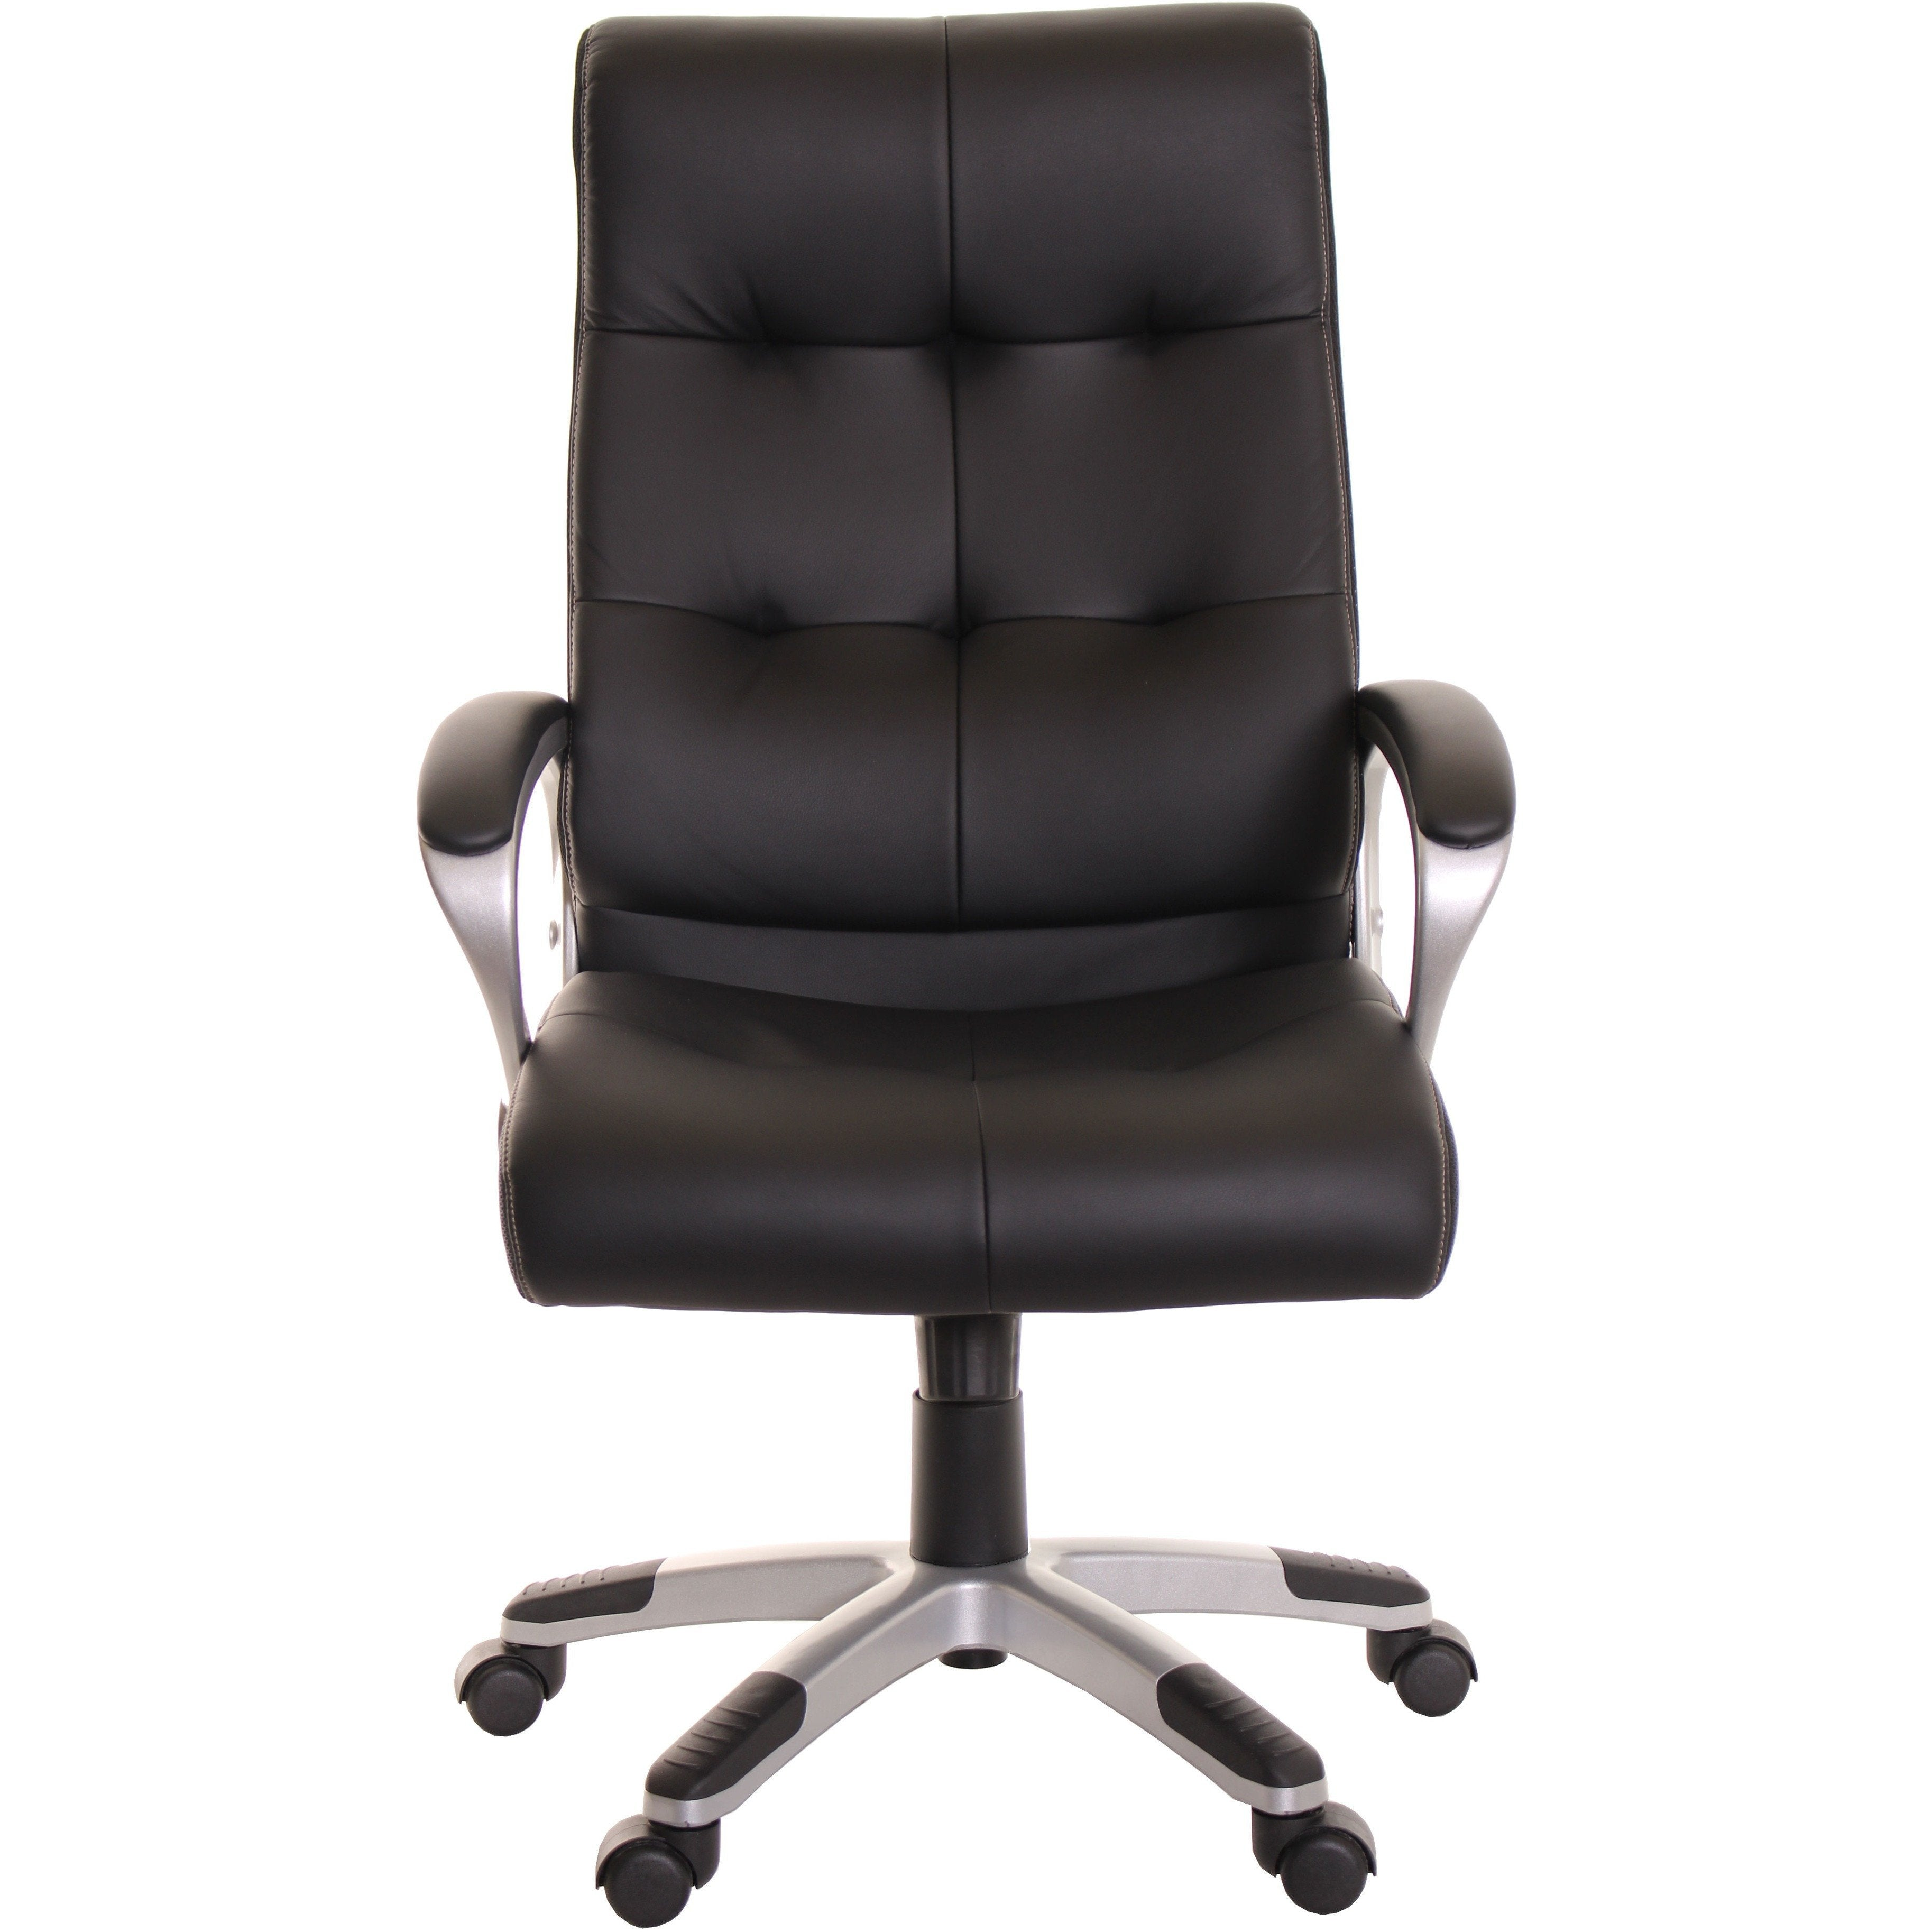 High Back Leather Office Task Chair Black Computer Chair By TimeOffice